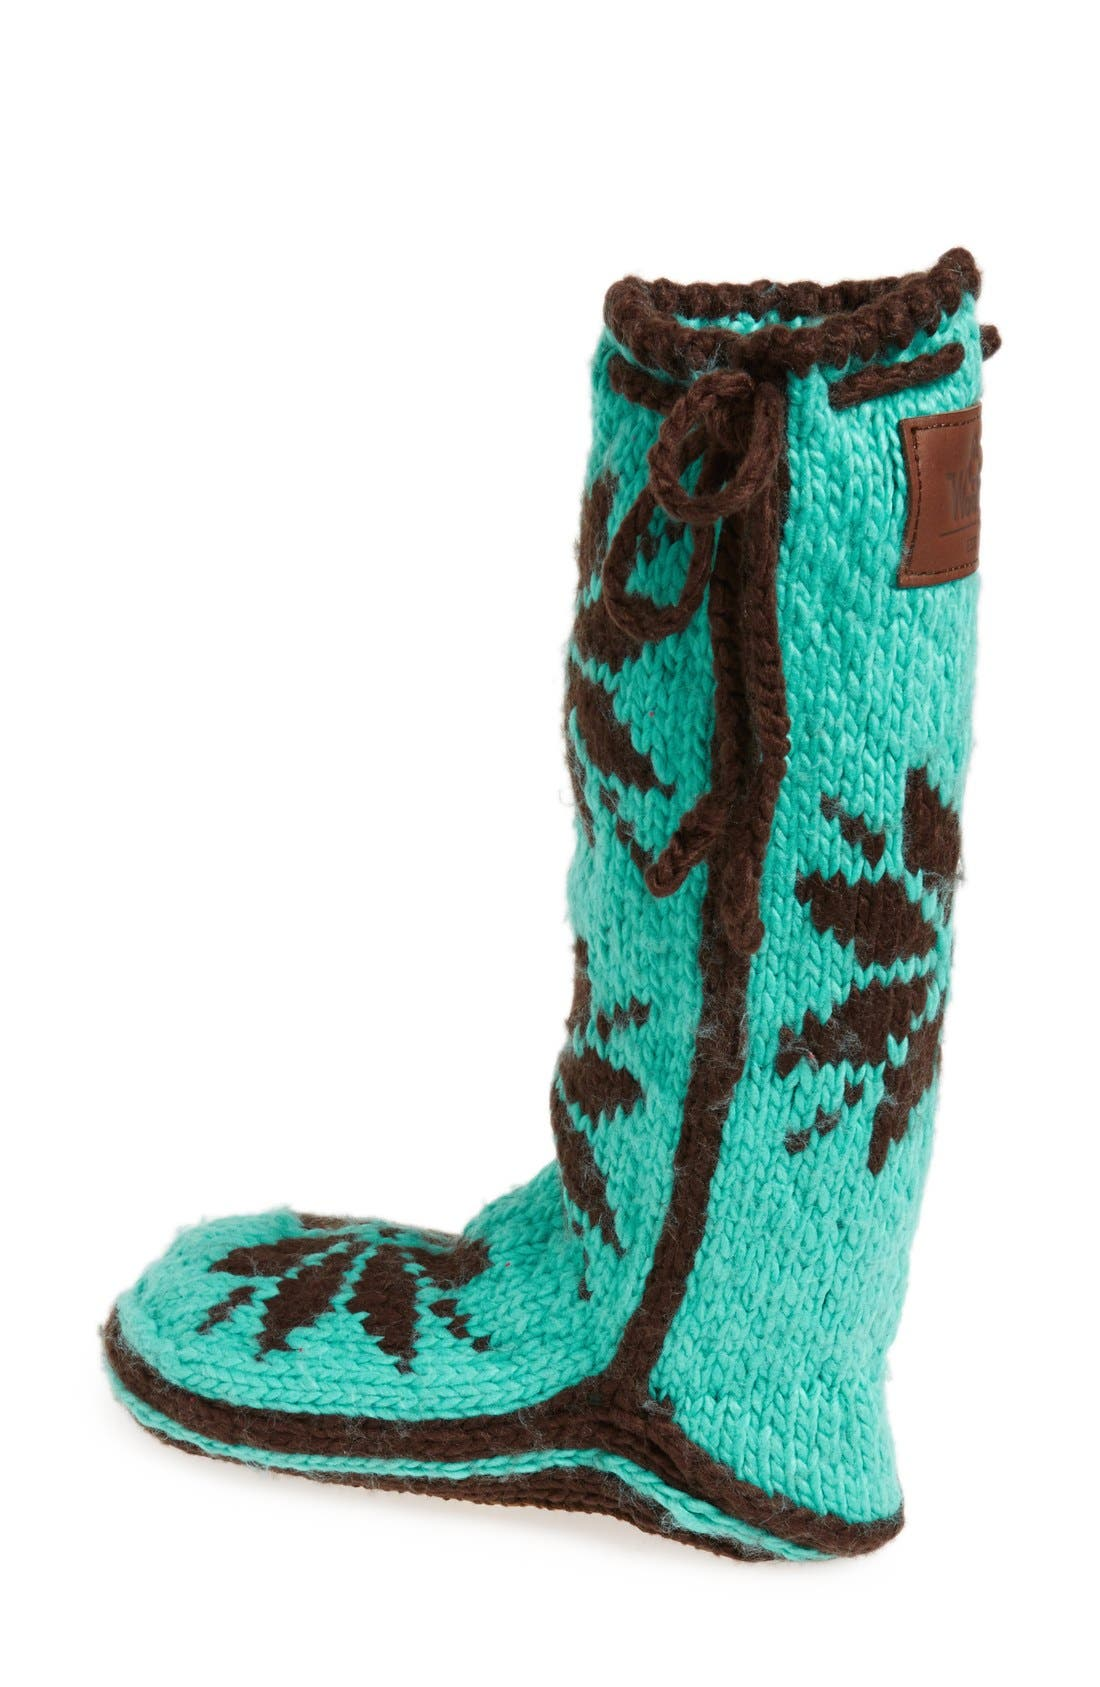 'Chalet' Socks,                             Alternate thumbnail 17, color,